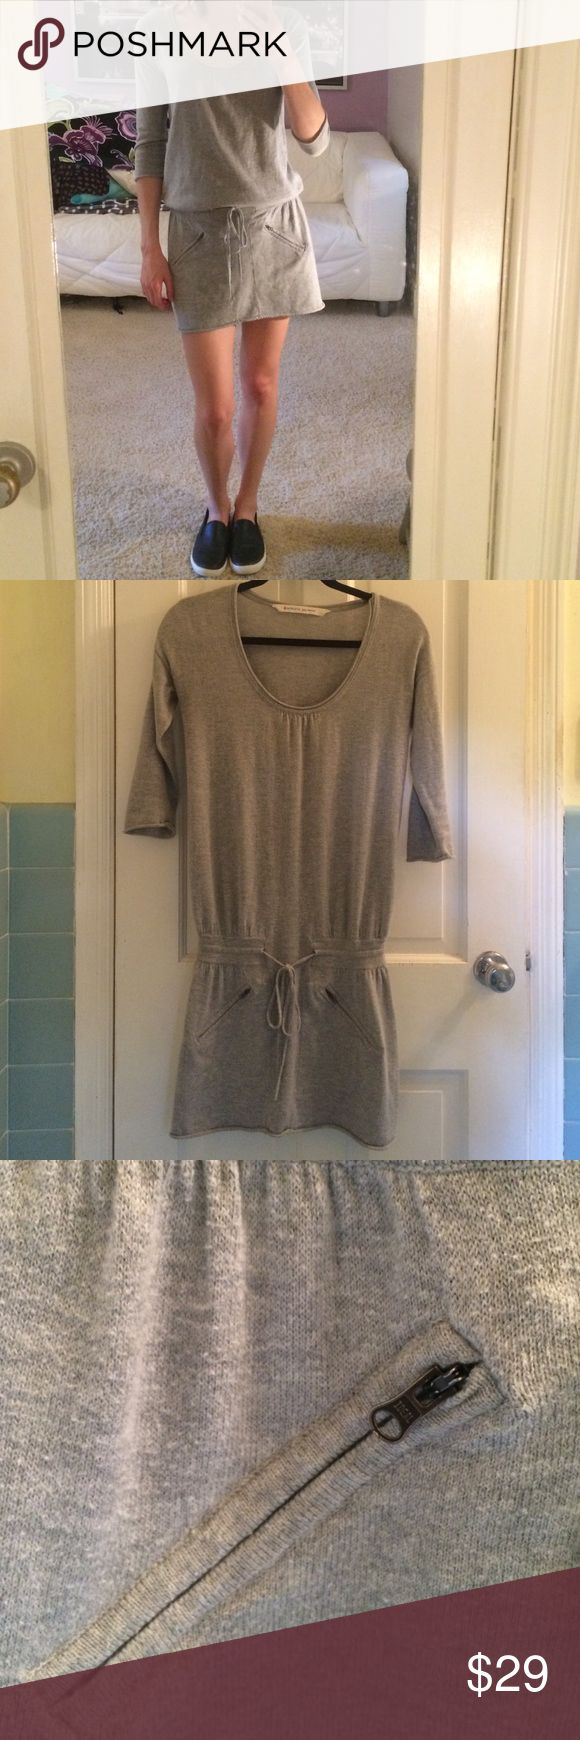 ATHLETA Gray Zipper Tie Dress Grey Athleta T shirt Dress with front zippers. Ties in the front. No odor or holes. Fabric has some wear from being washed. Athleta Dresses Mini